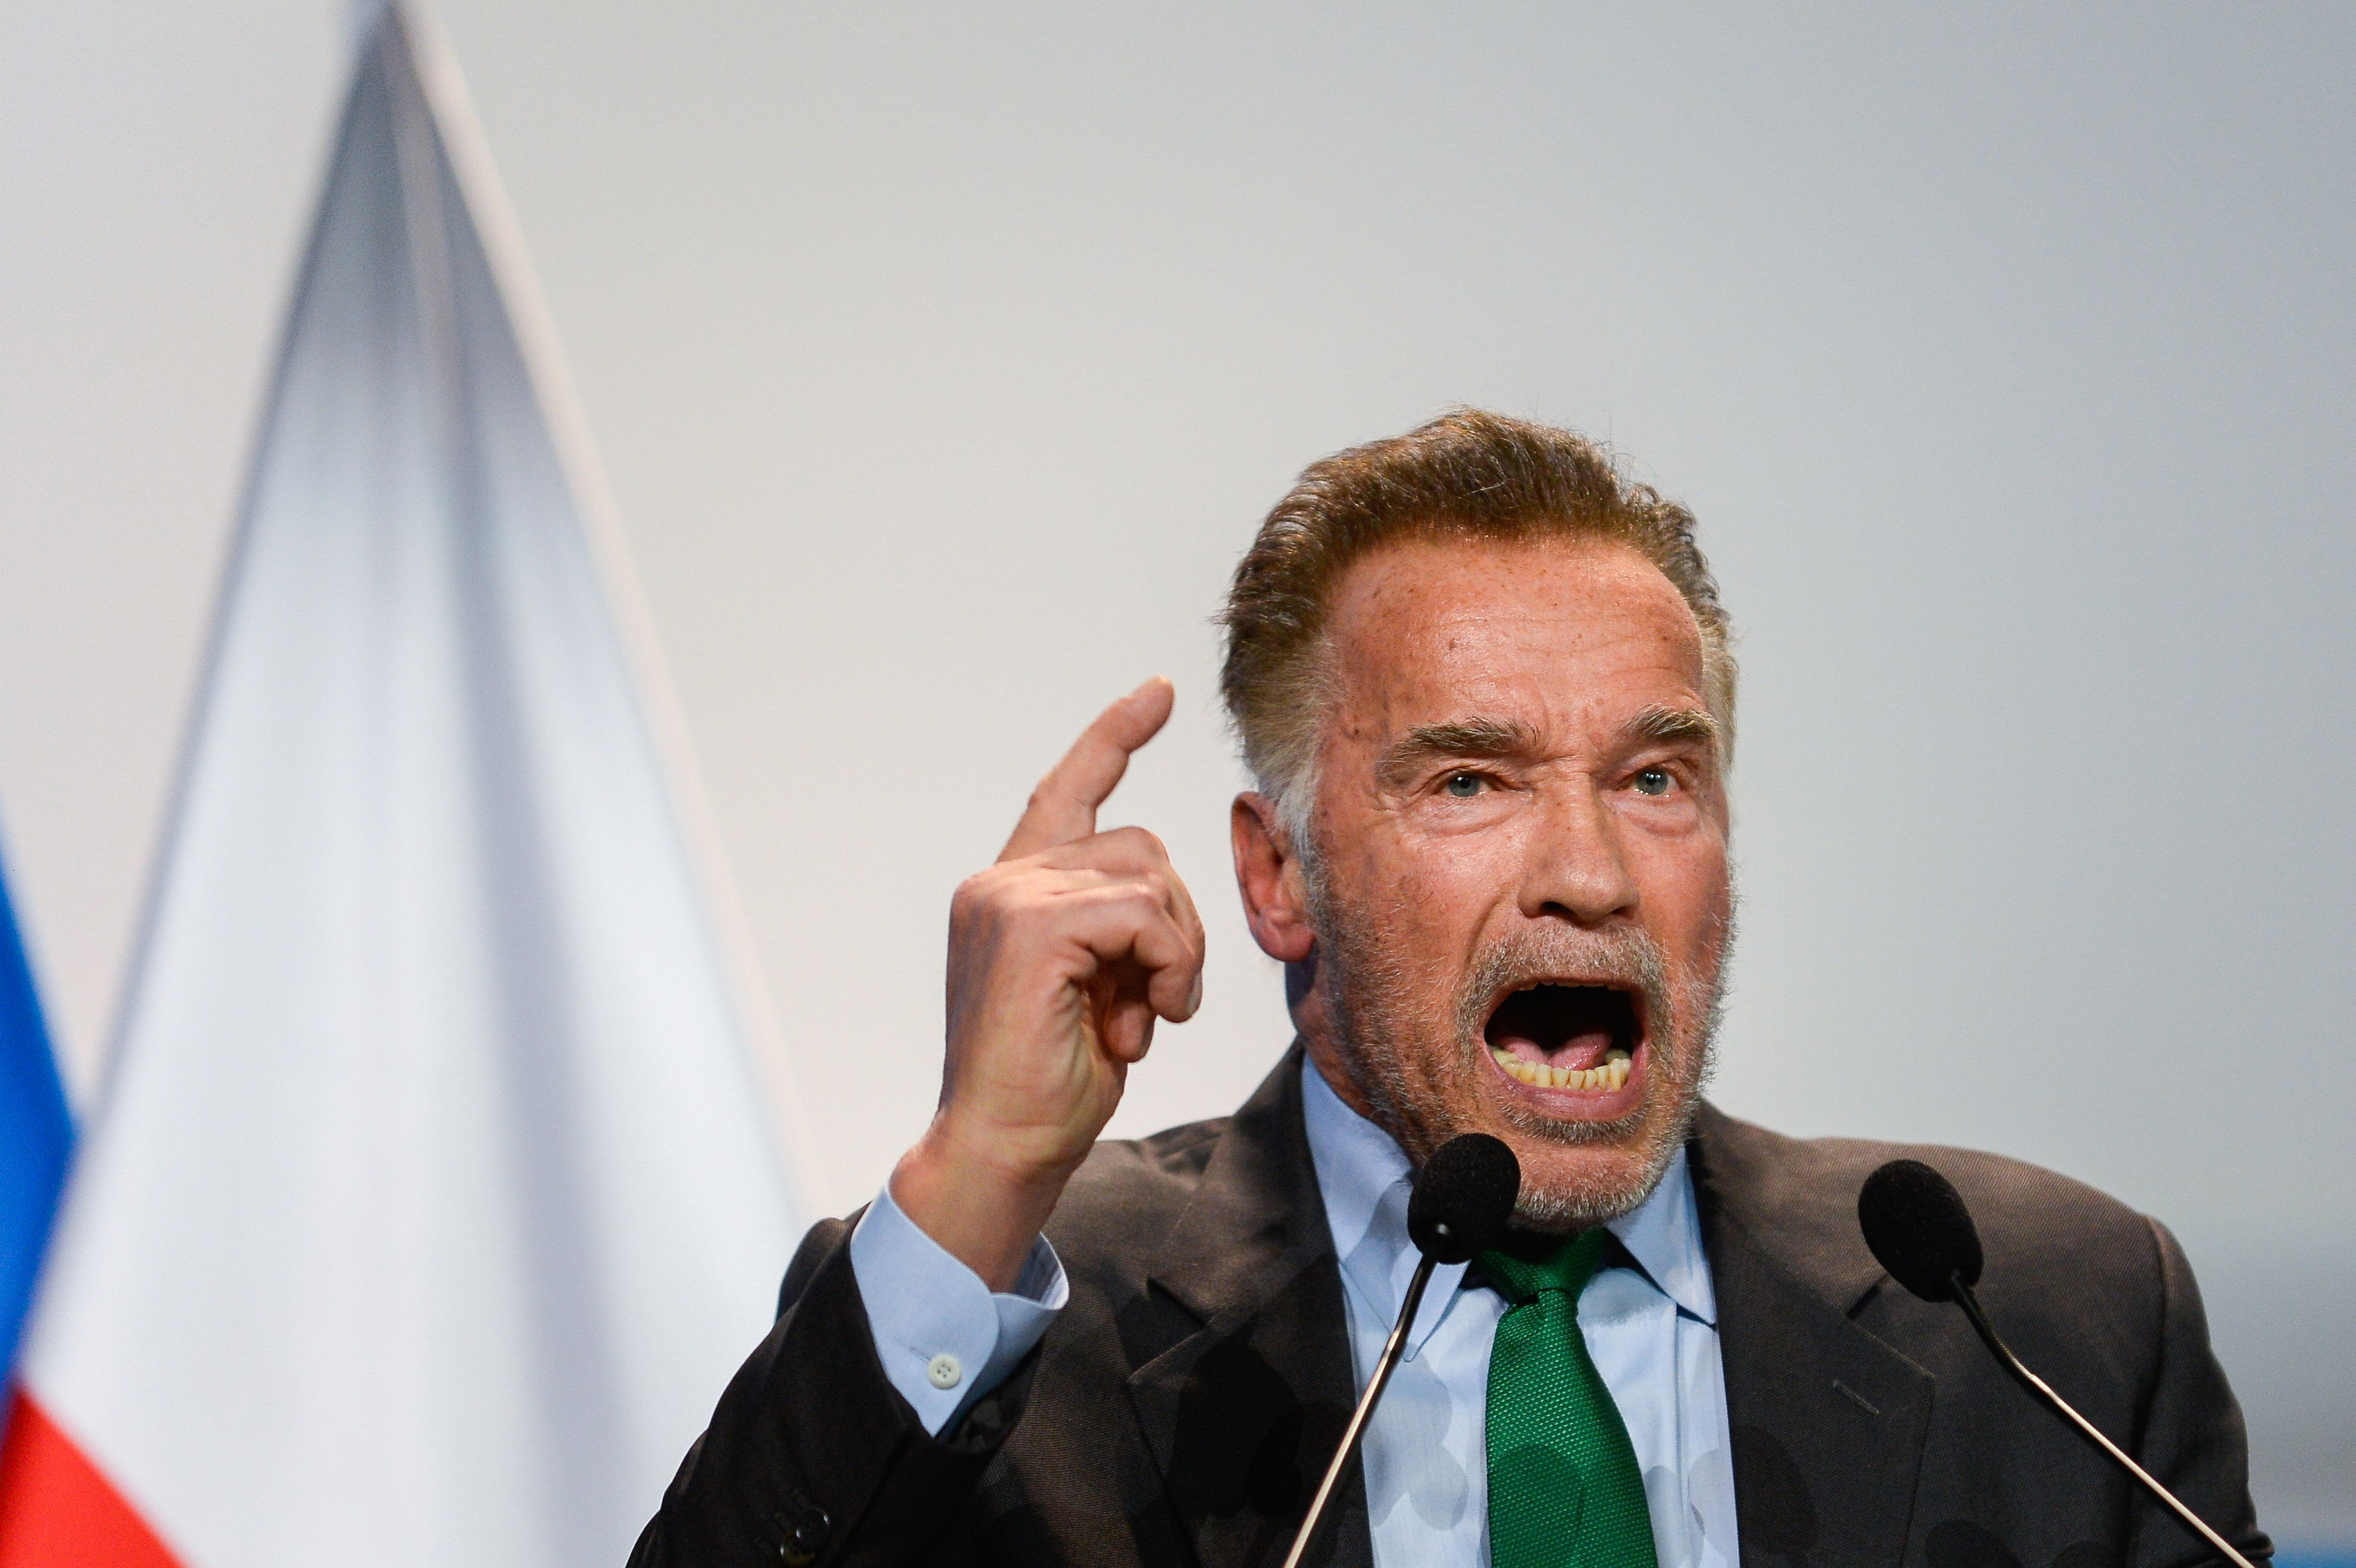 Schwarzenegger Goes After Trump At Climate Summit: America Is More Than One